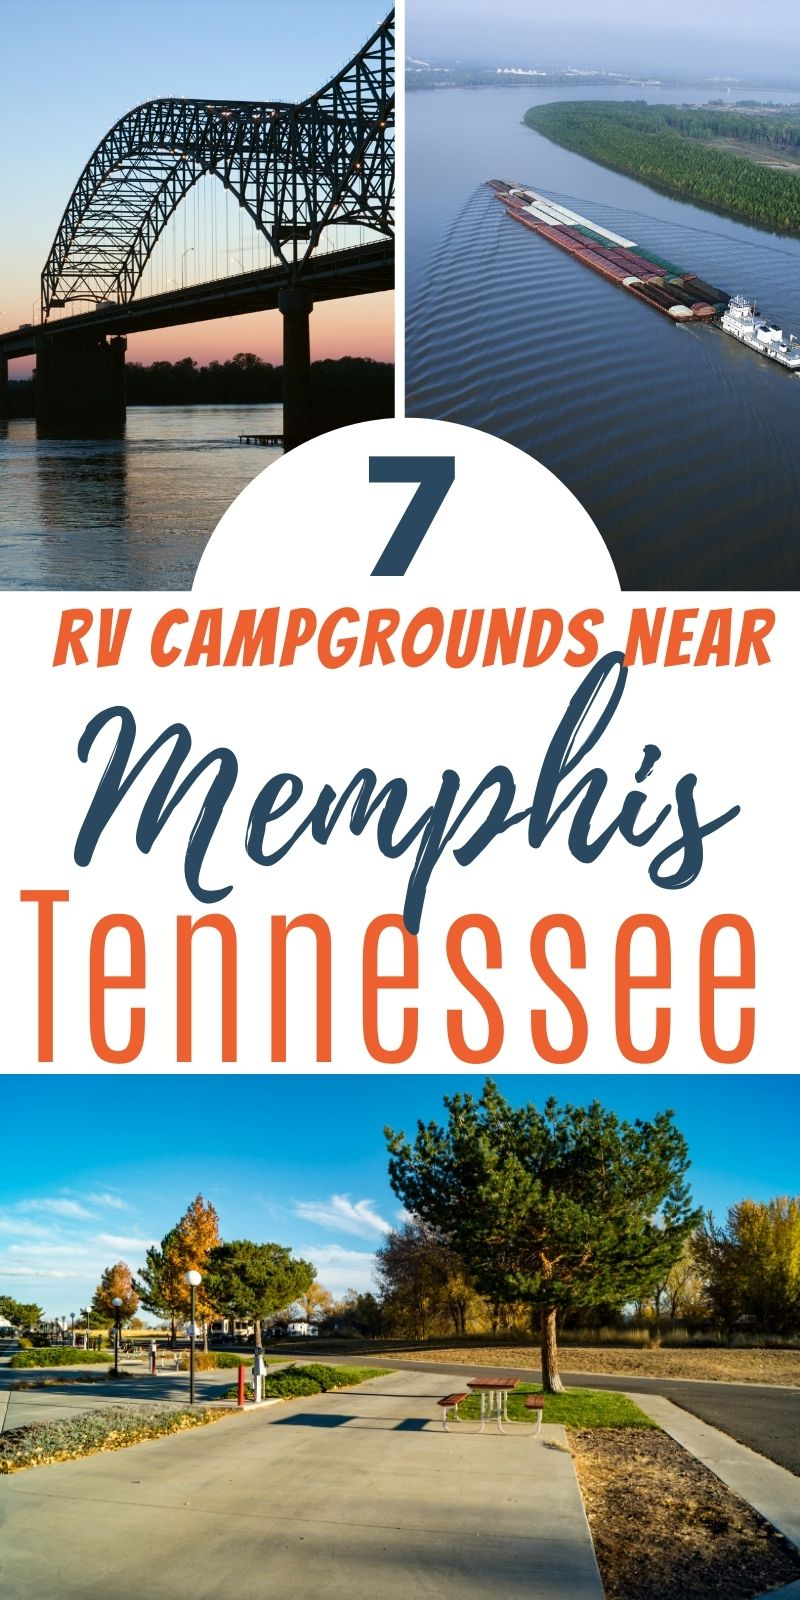 rv parks near Memphis tn